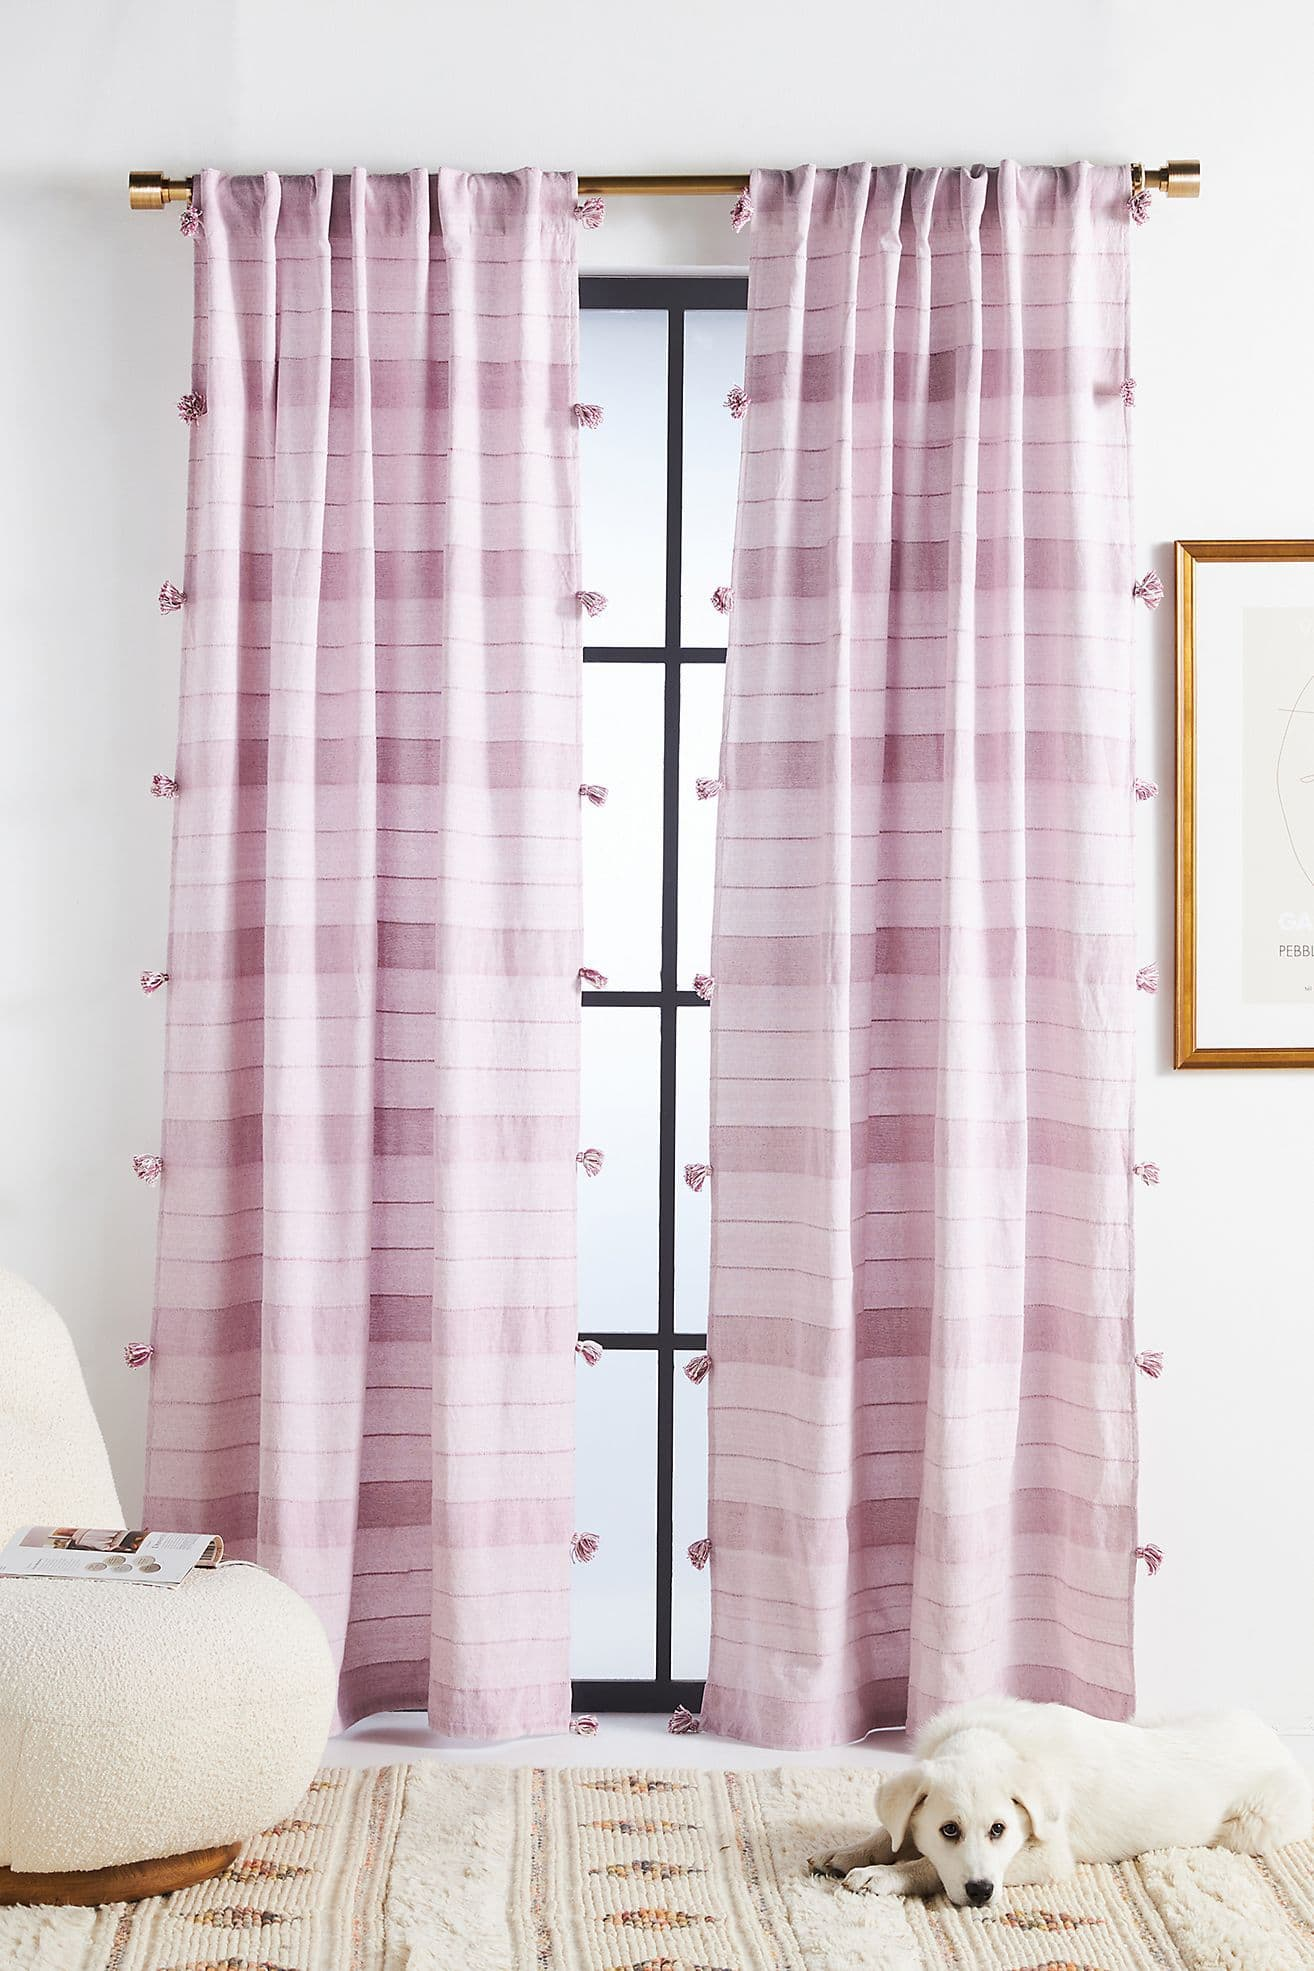 Woven Purple Indie Curtains